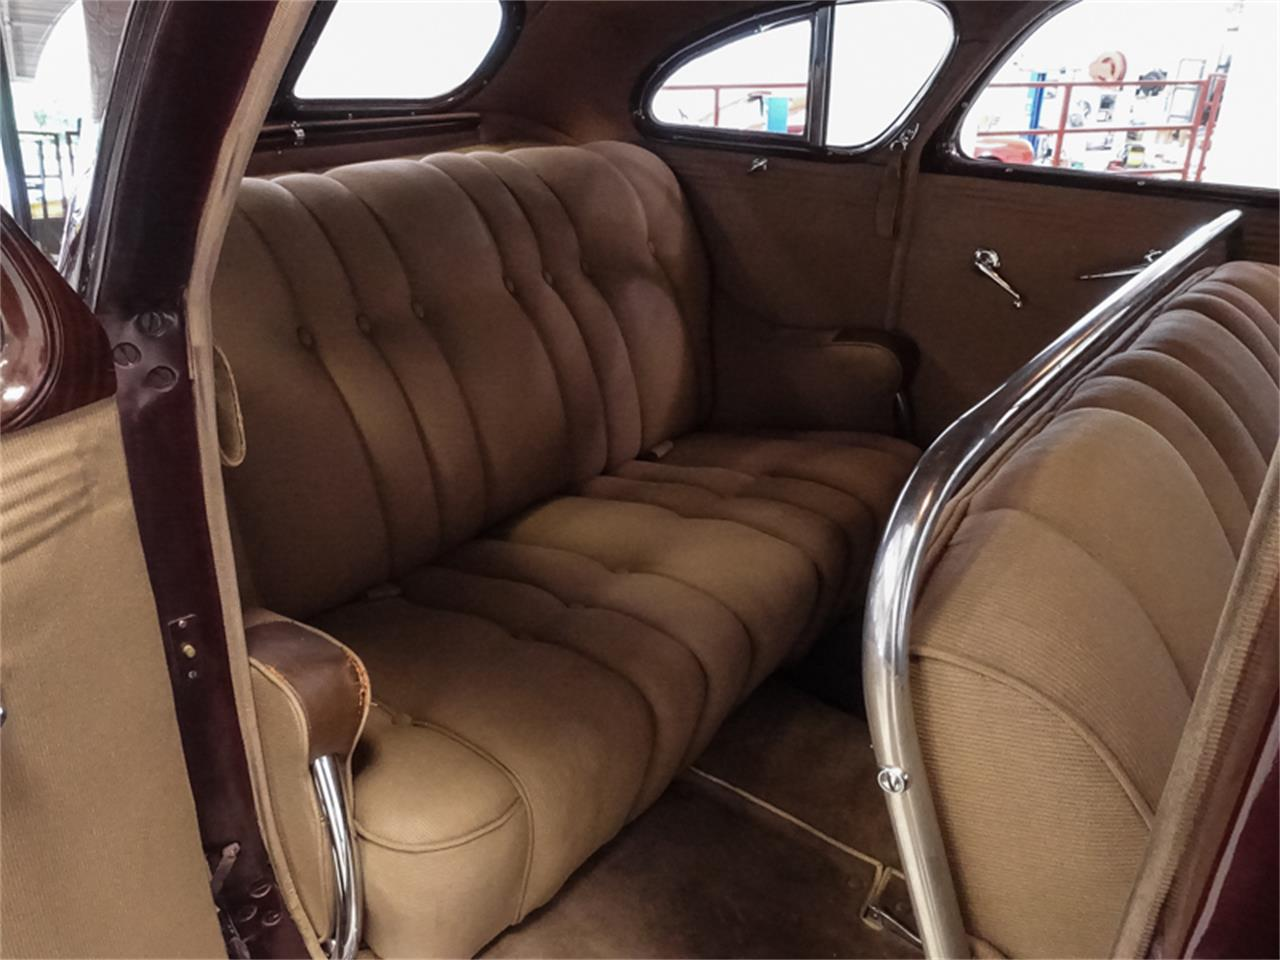 1935 Chrysler Airflow for sale in St. Louis, MO – photo 32